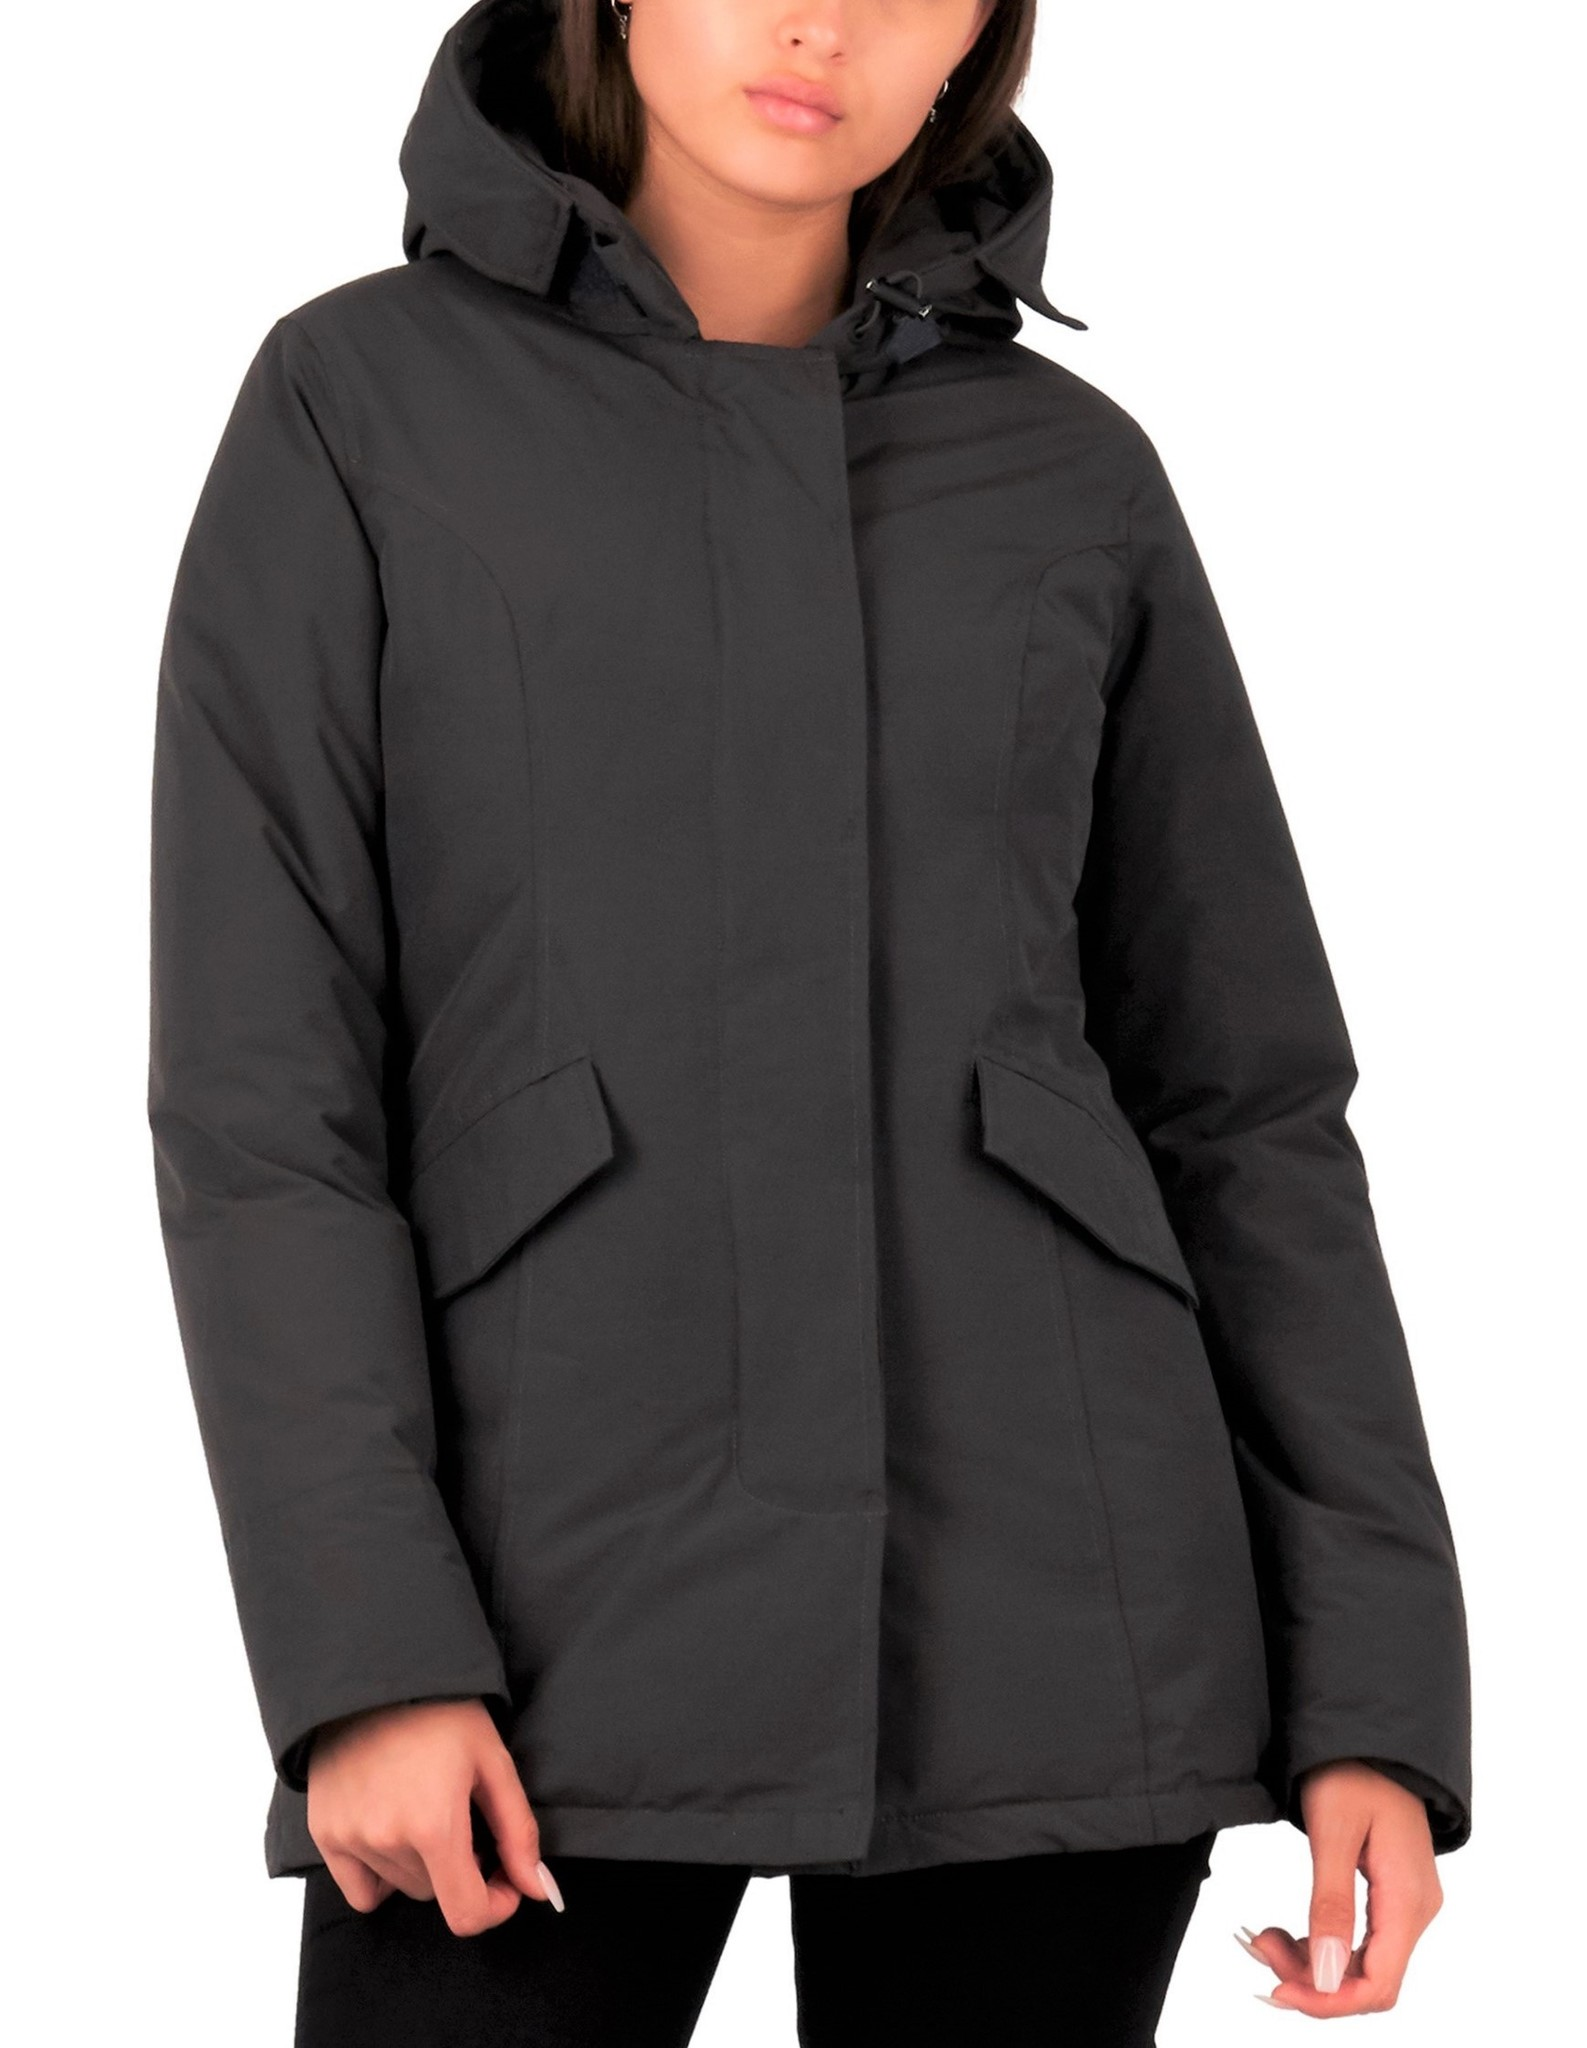 Airforce : 2 pocket parka HRW0425 Met.Grey